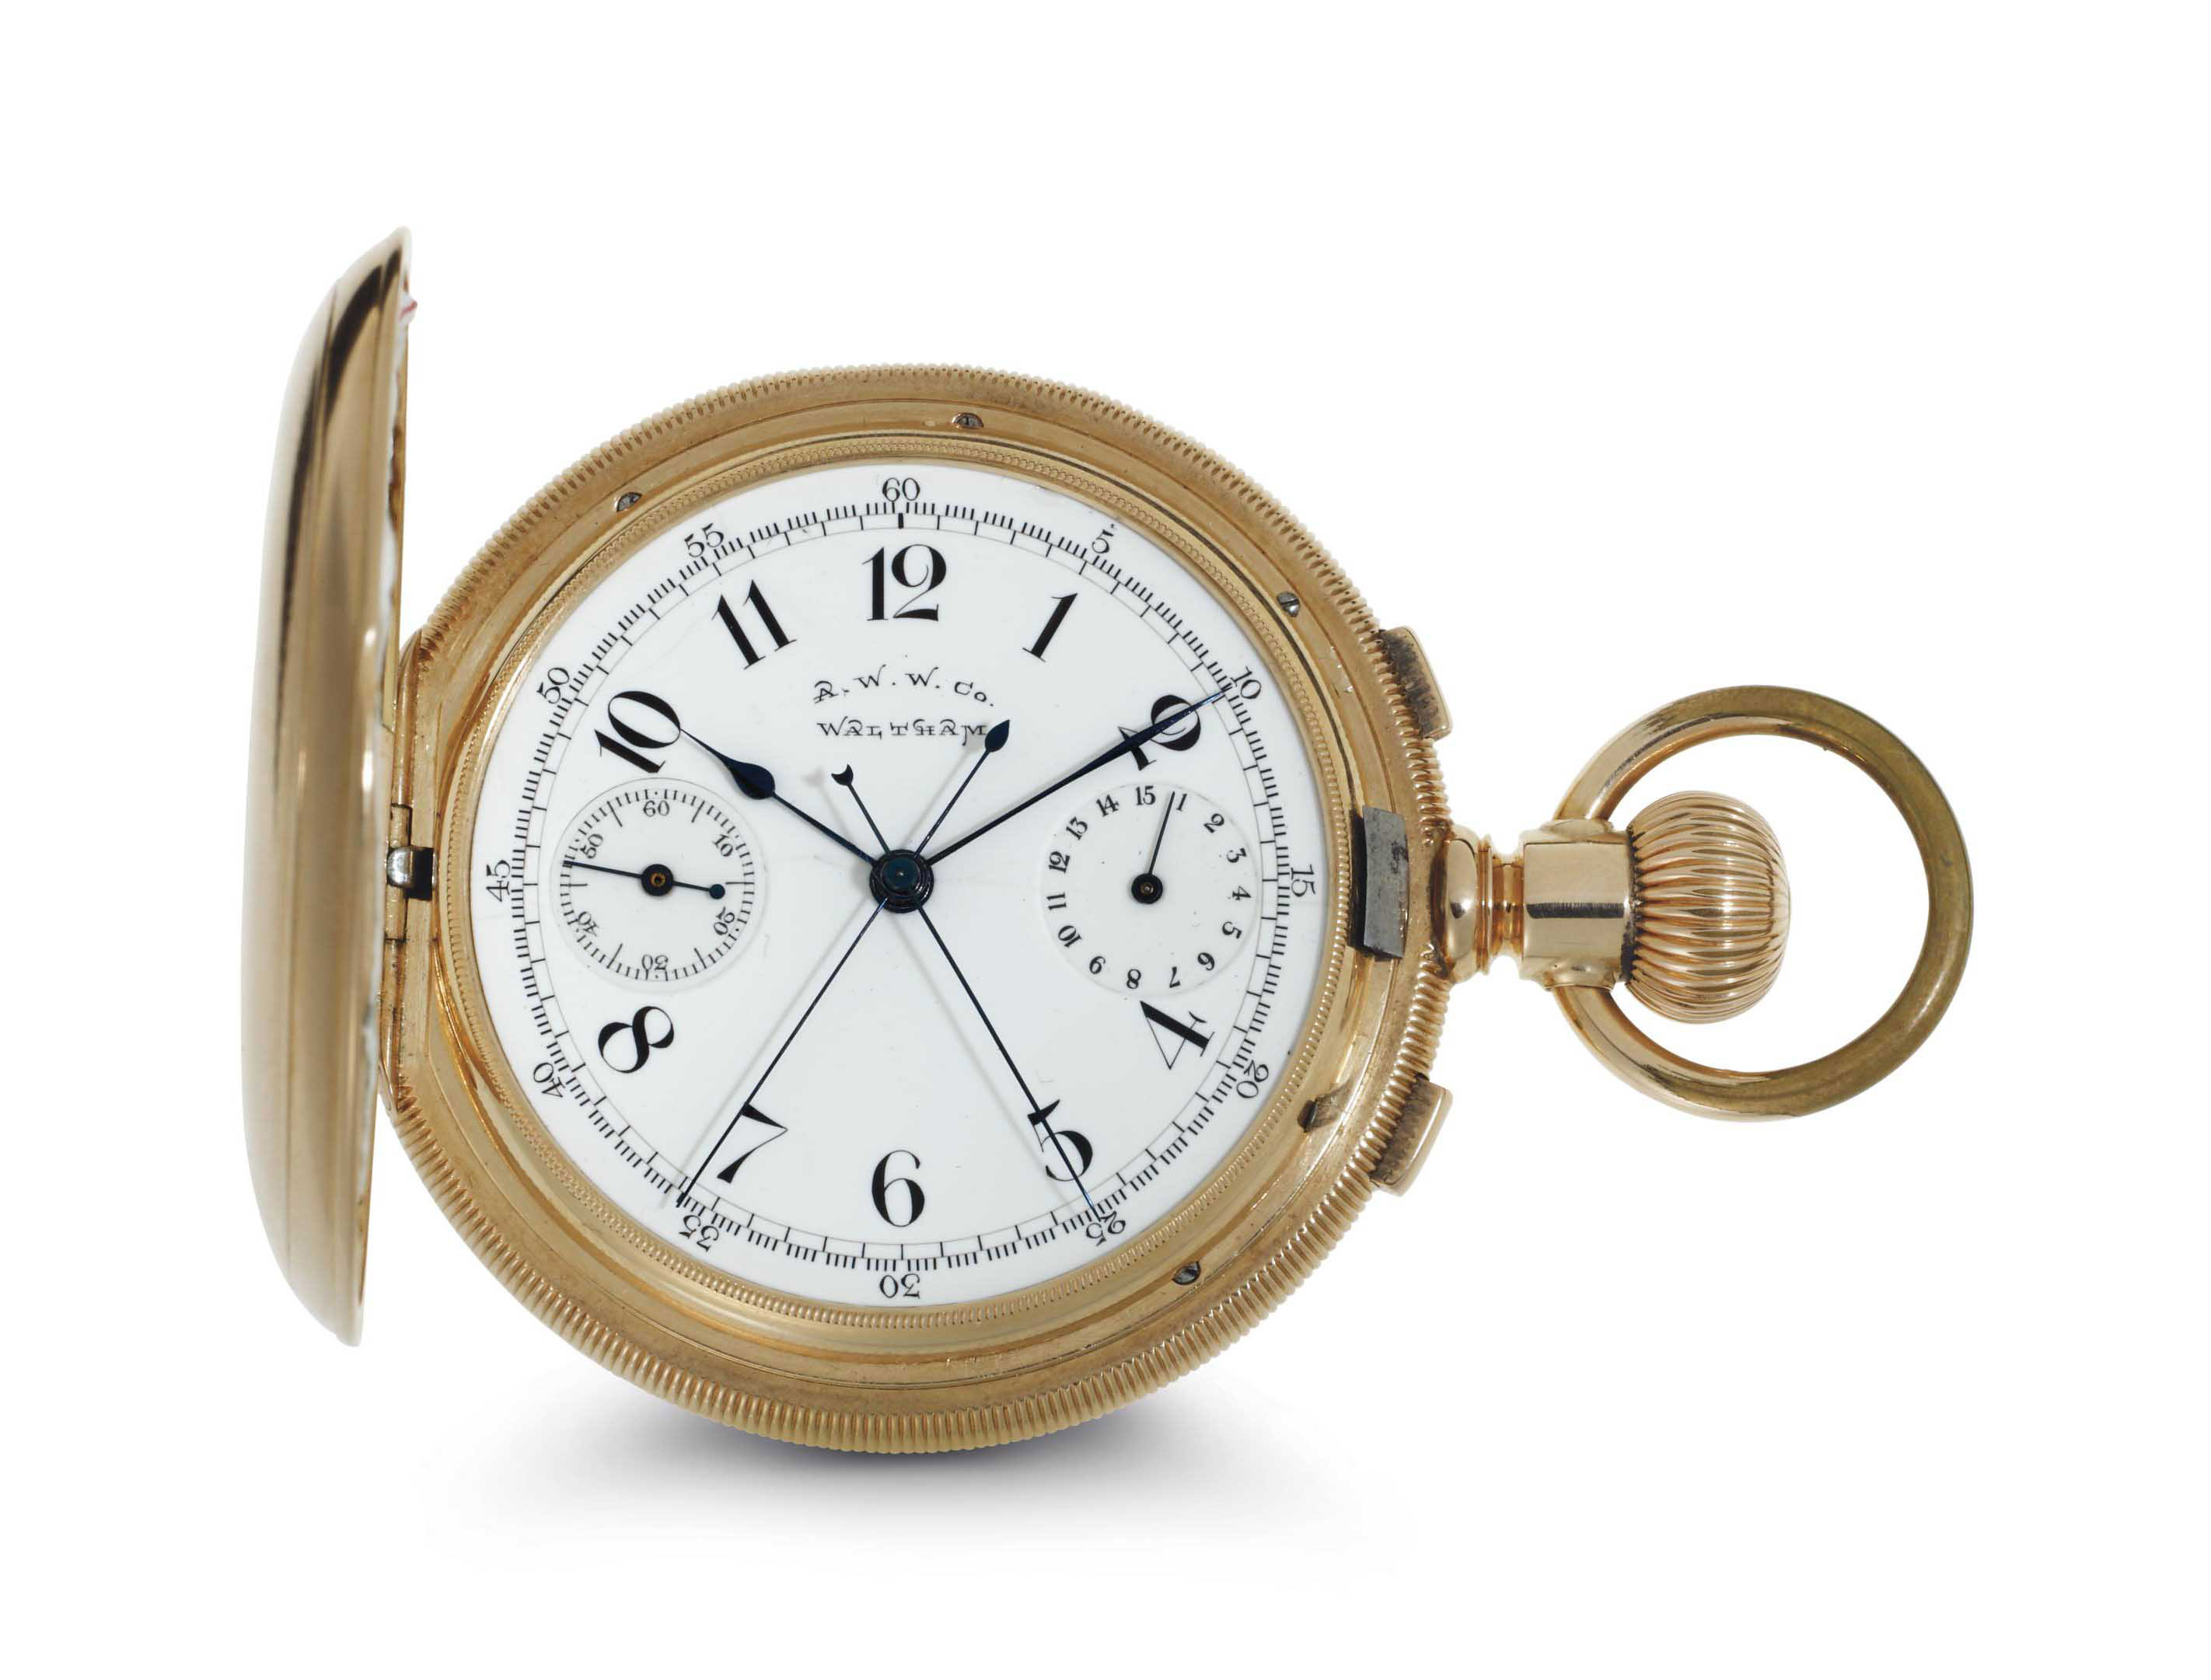 American Waltham Watch.  A Fine And Rare 14k Gold Split-Seconds Chronograph Hunter Case Keyless Lever Pocket Watch With 15 Minute Register